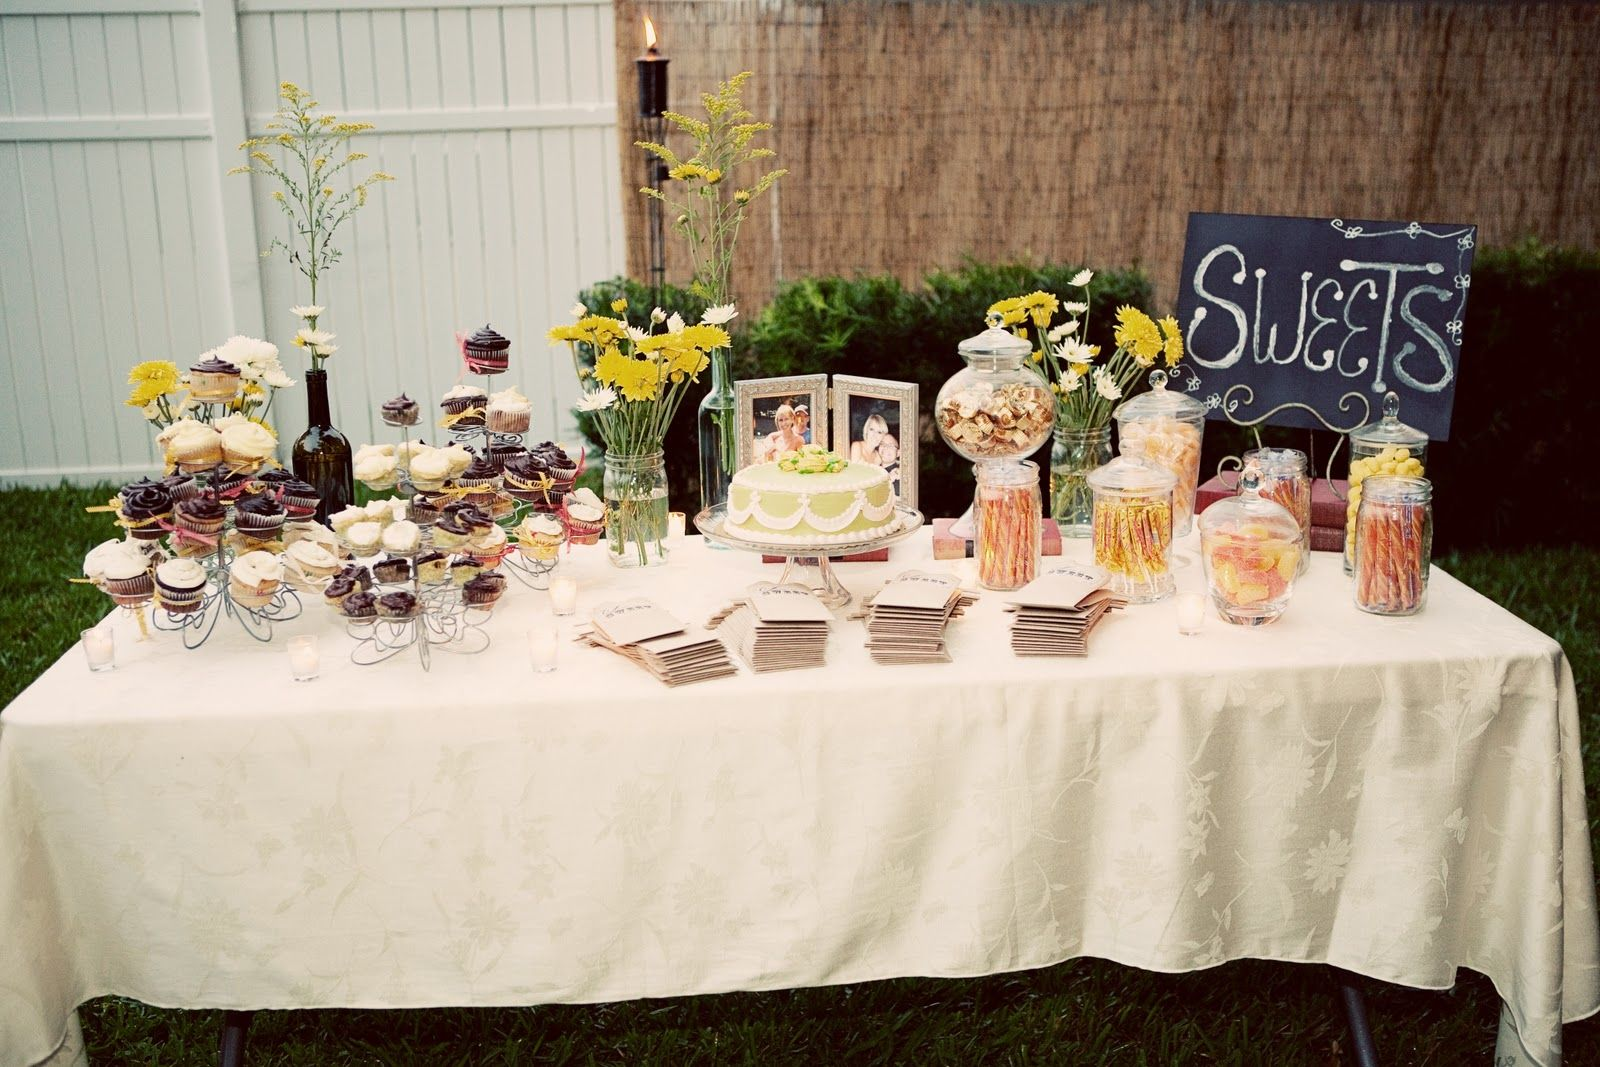 Diy backyard wedding table settings also buying flowers wholesale diy backyard wedding table settings also buying flowers wholesale gives you a ton at junglespirit Choice Image